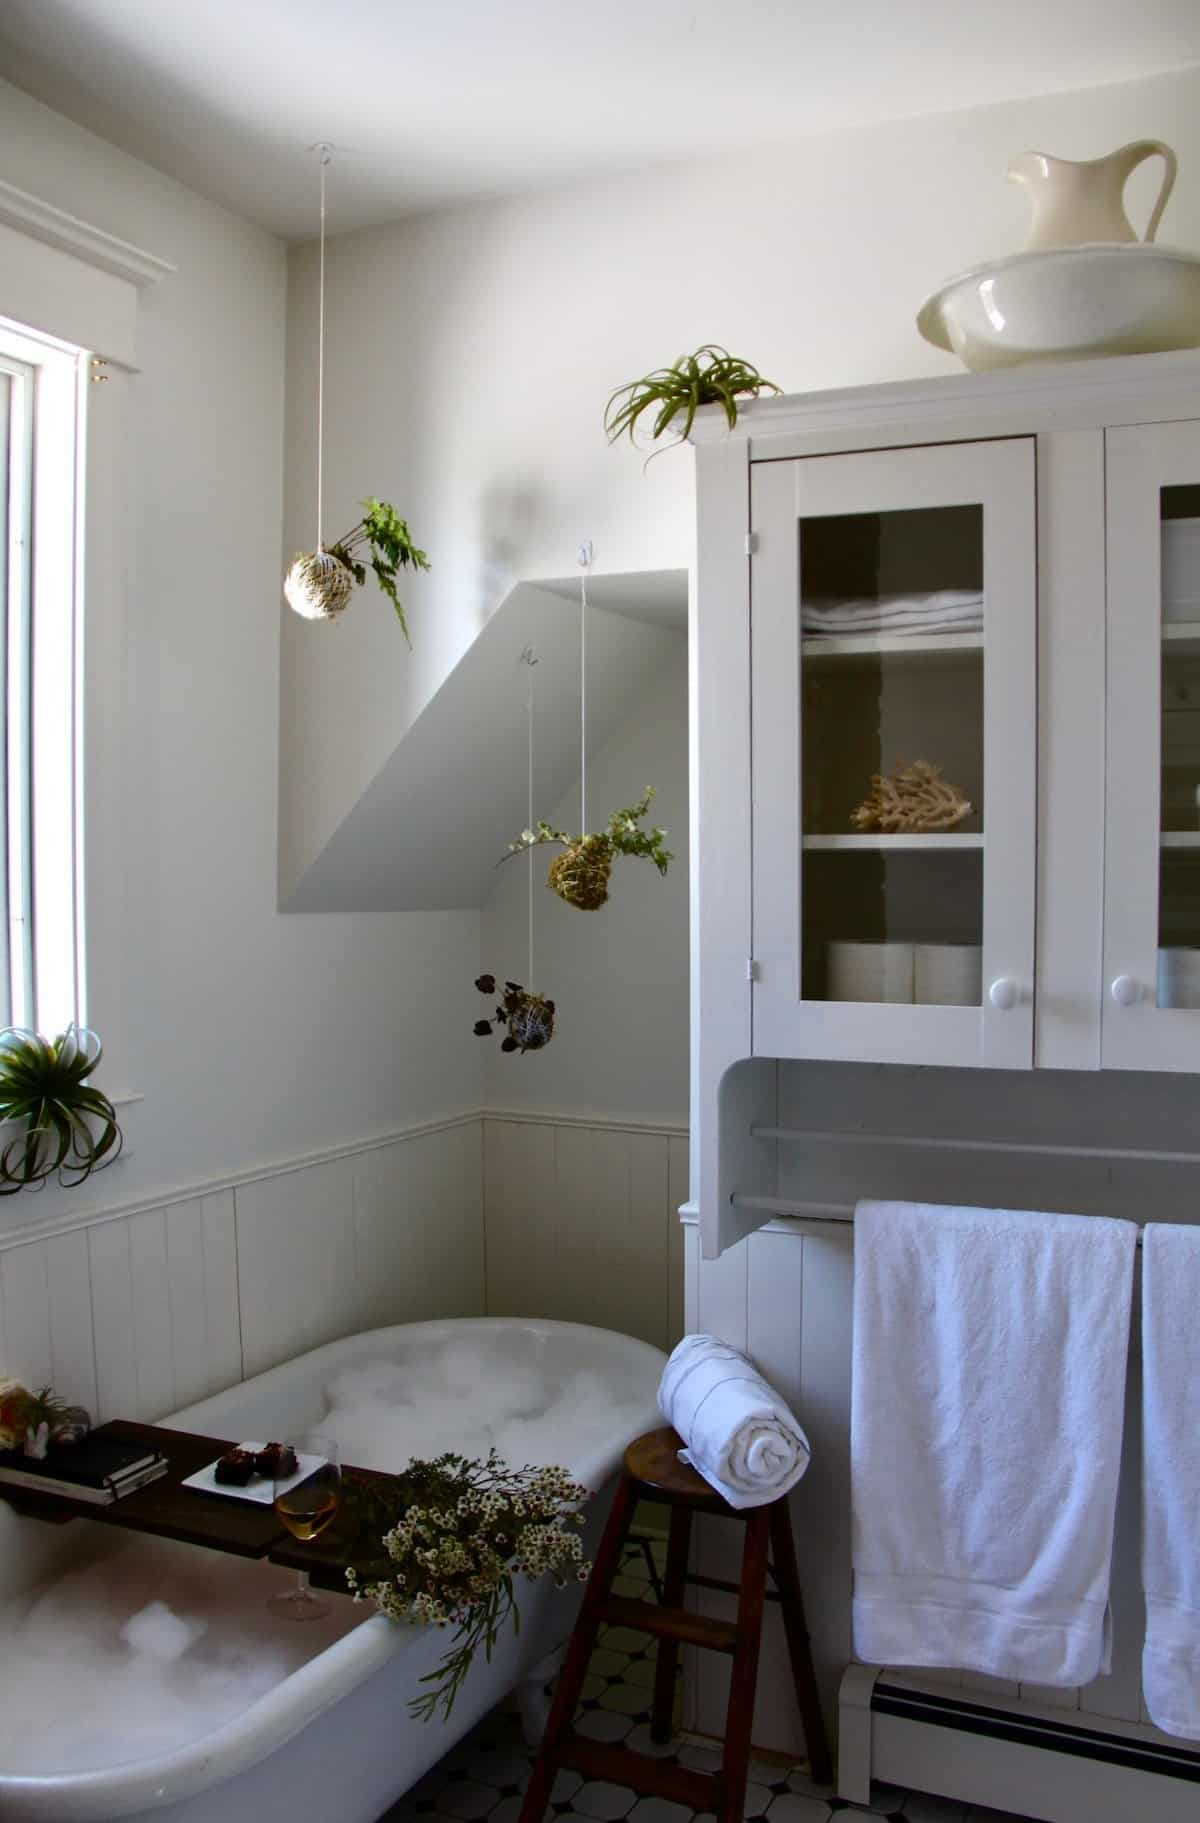 White clawfoot bathtub full of bubbles surrounded by houseplants and treats